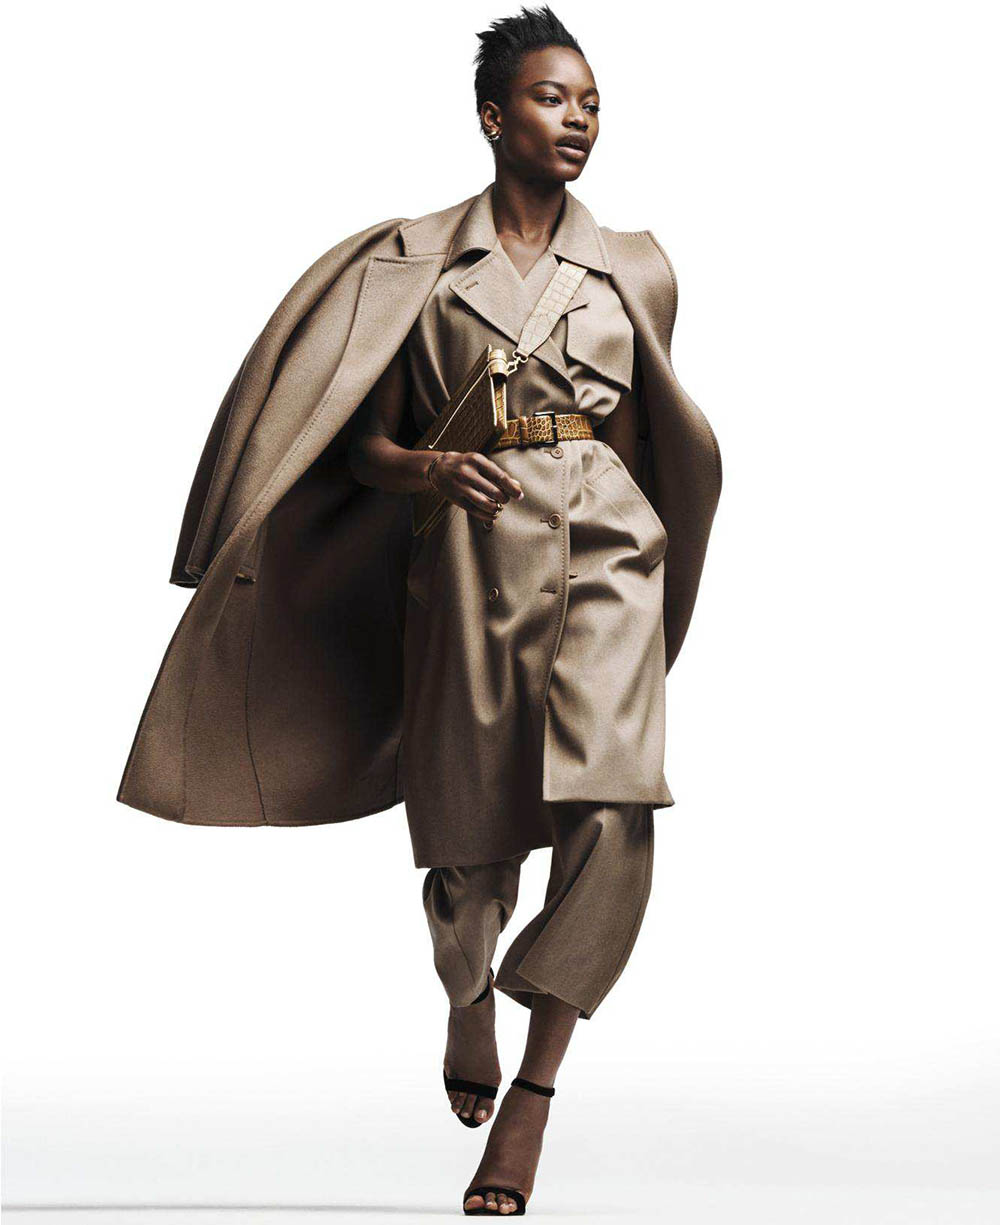 Mayowa Nicholas by Sebastian Kim for Harper's Bazaar US May 2018